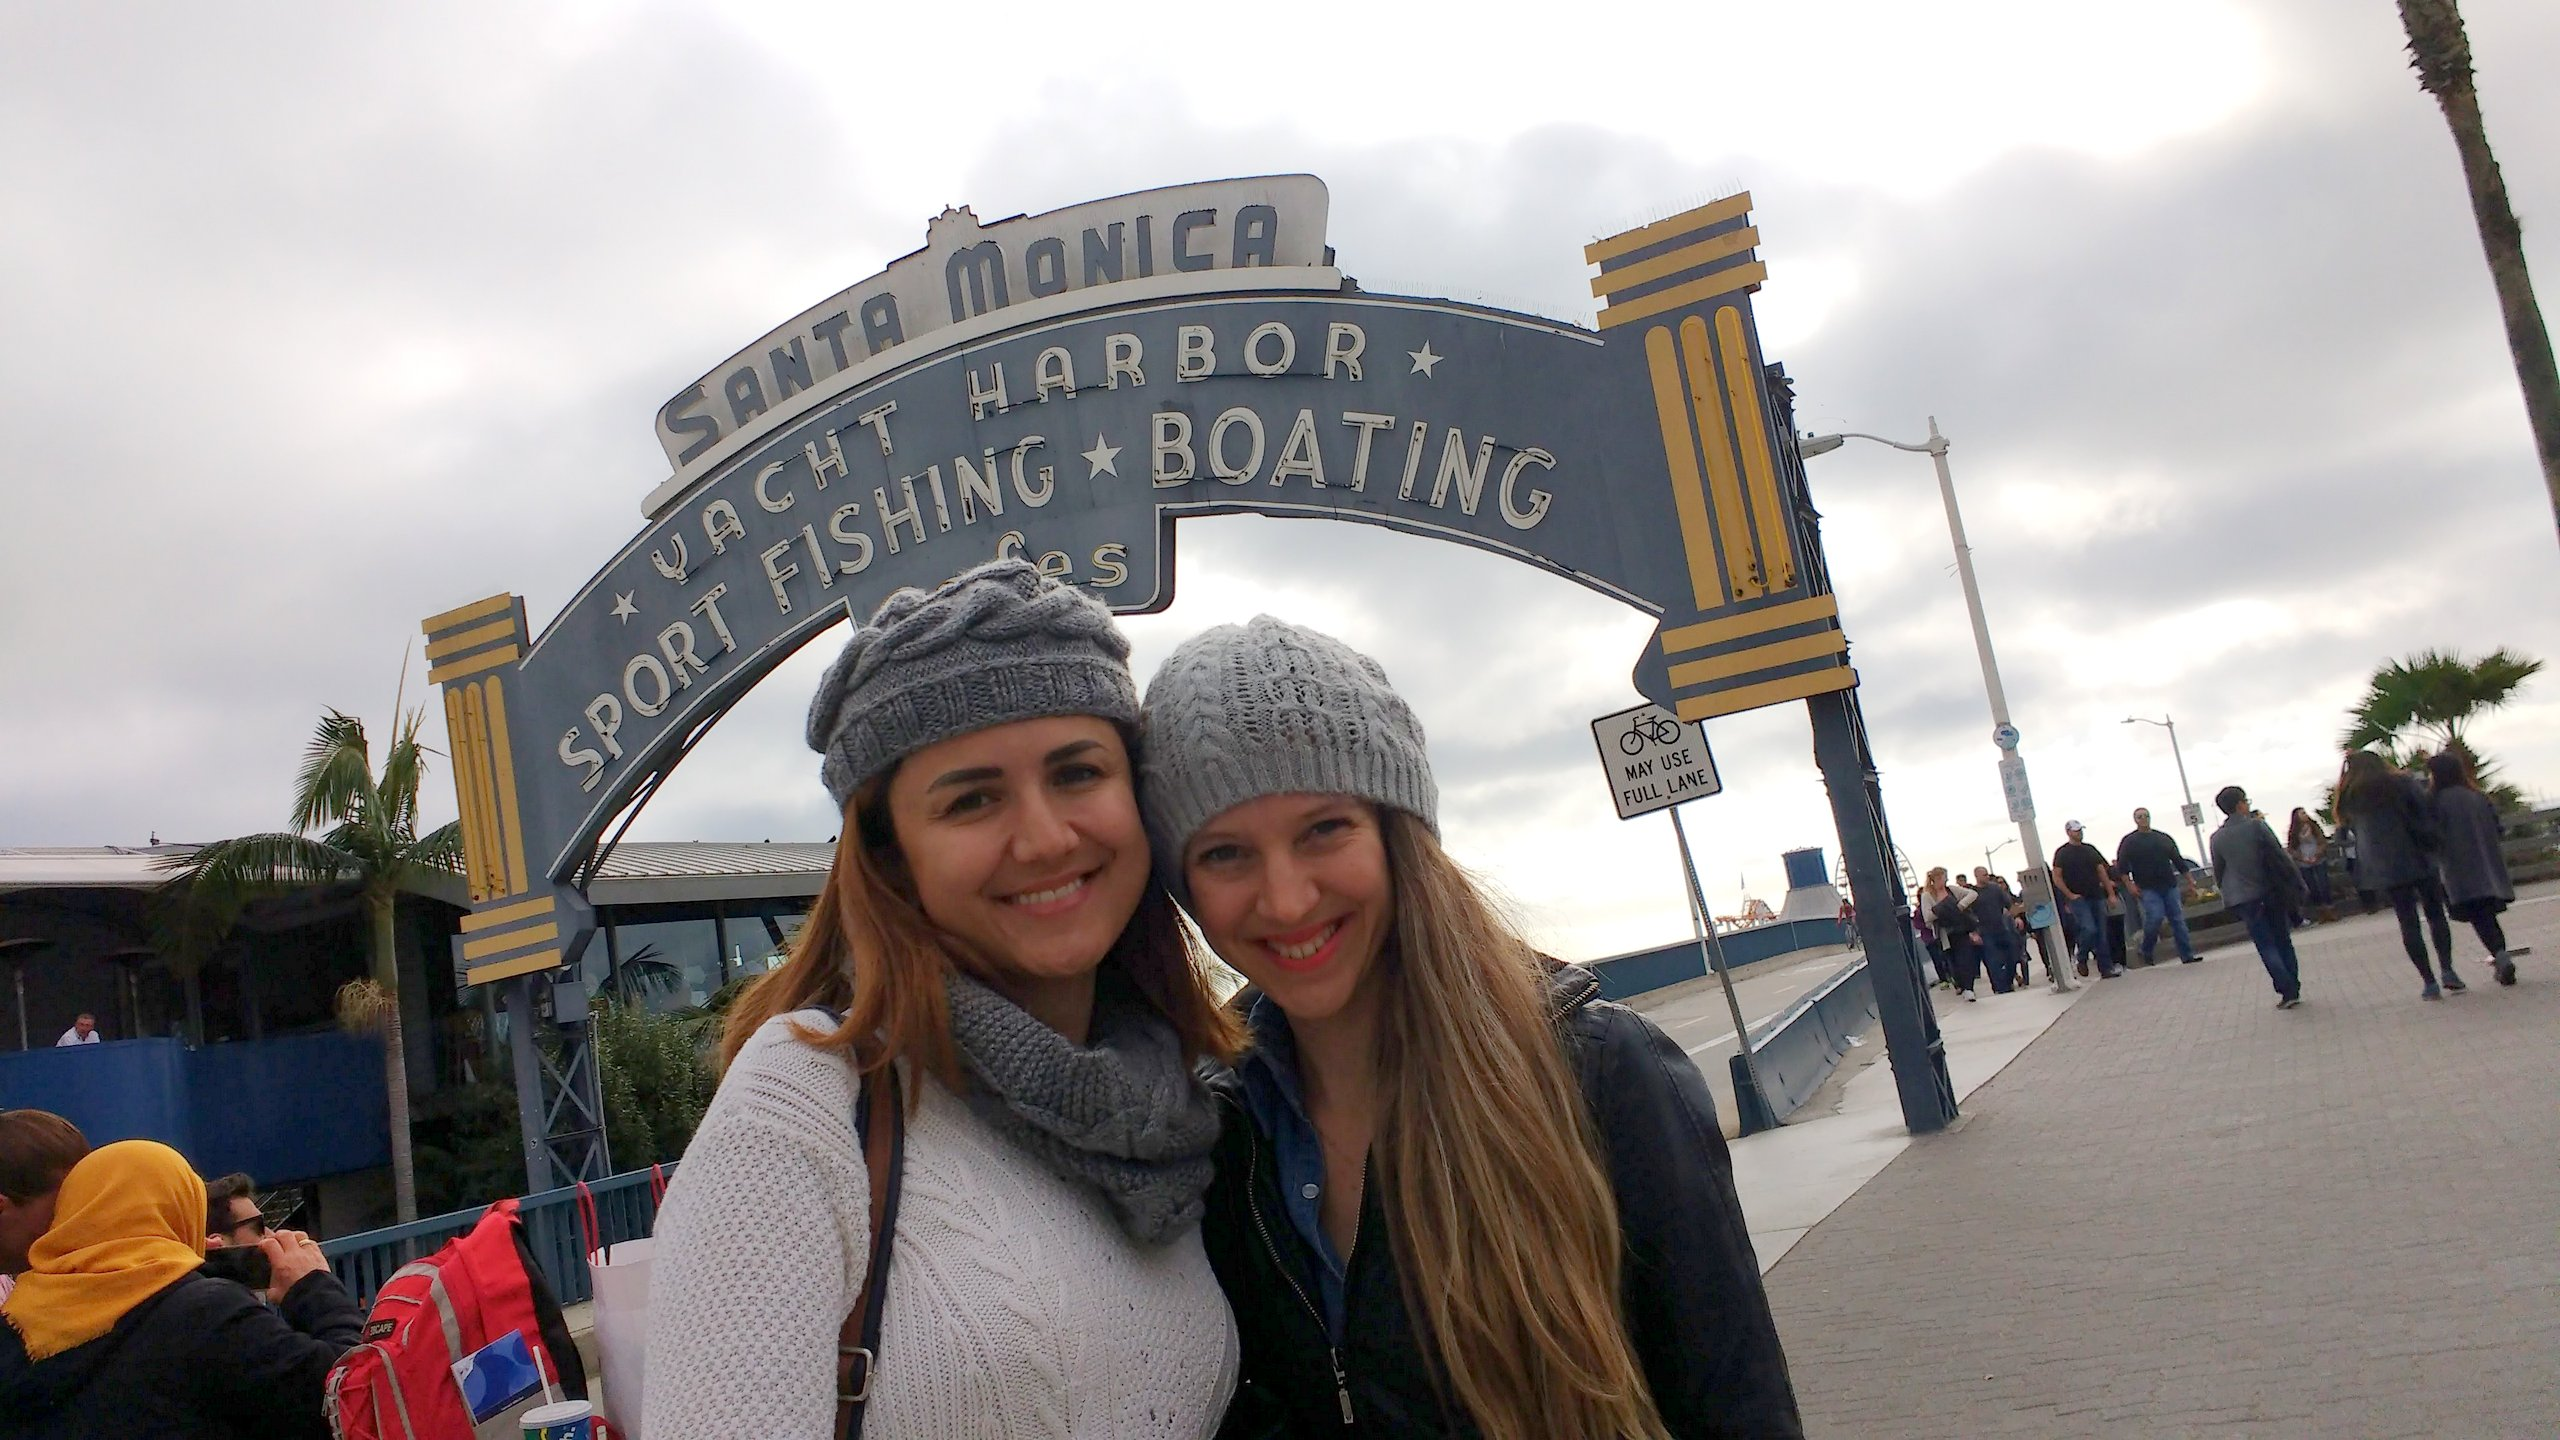 Gizem, Pinar, and the famous Santa Monica Pier neon sign